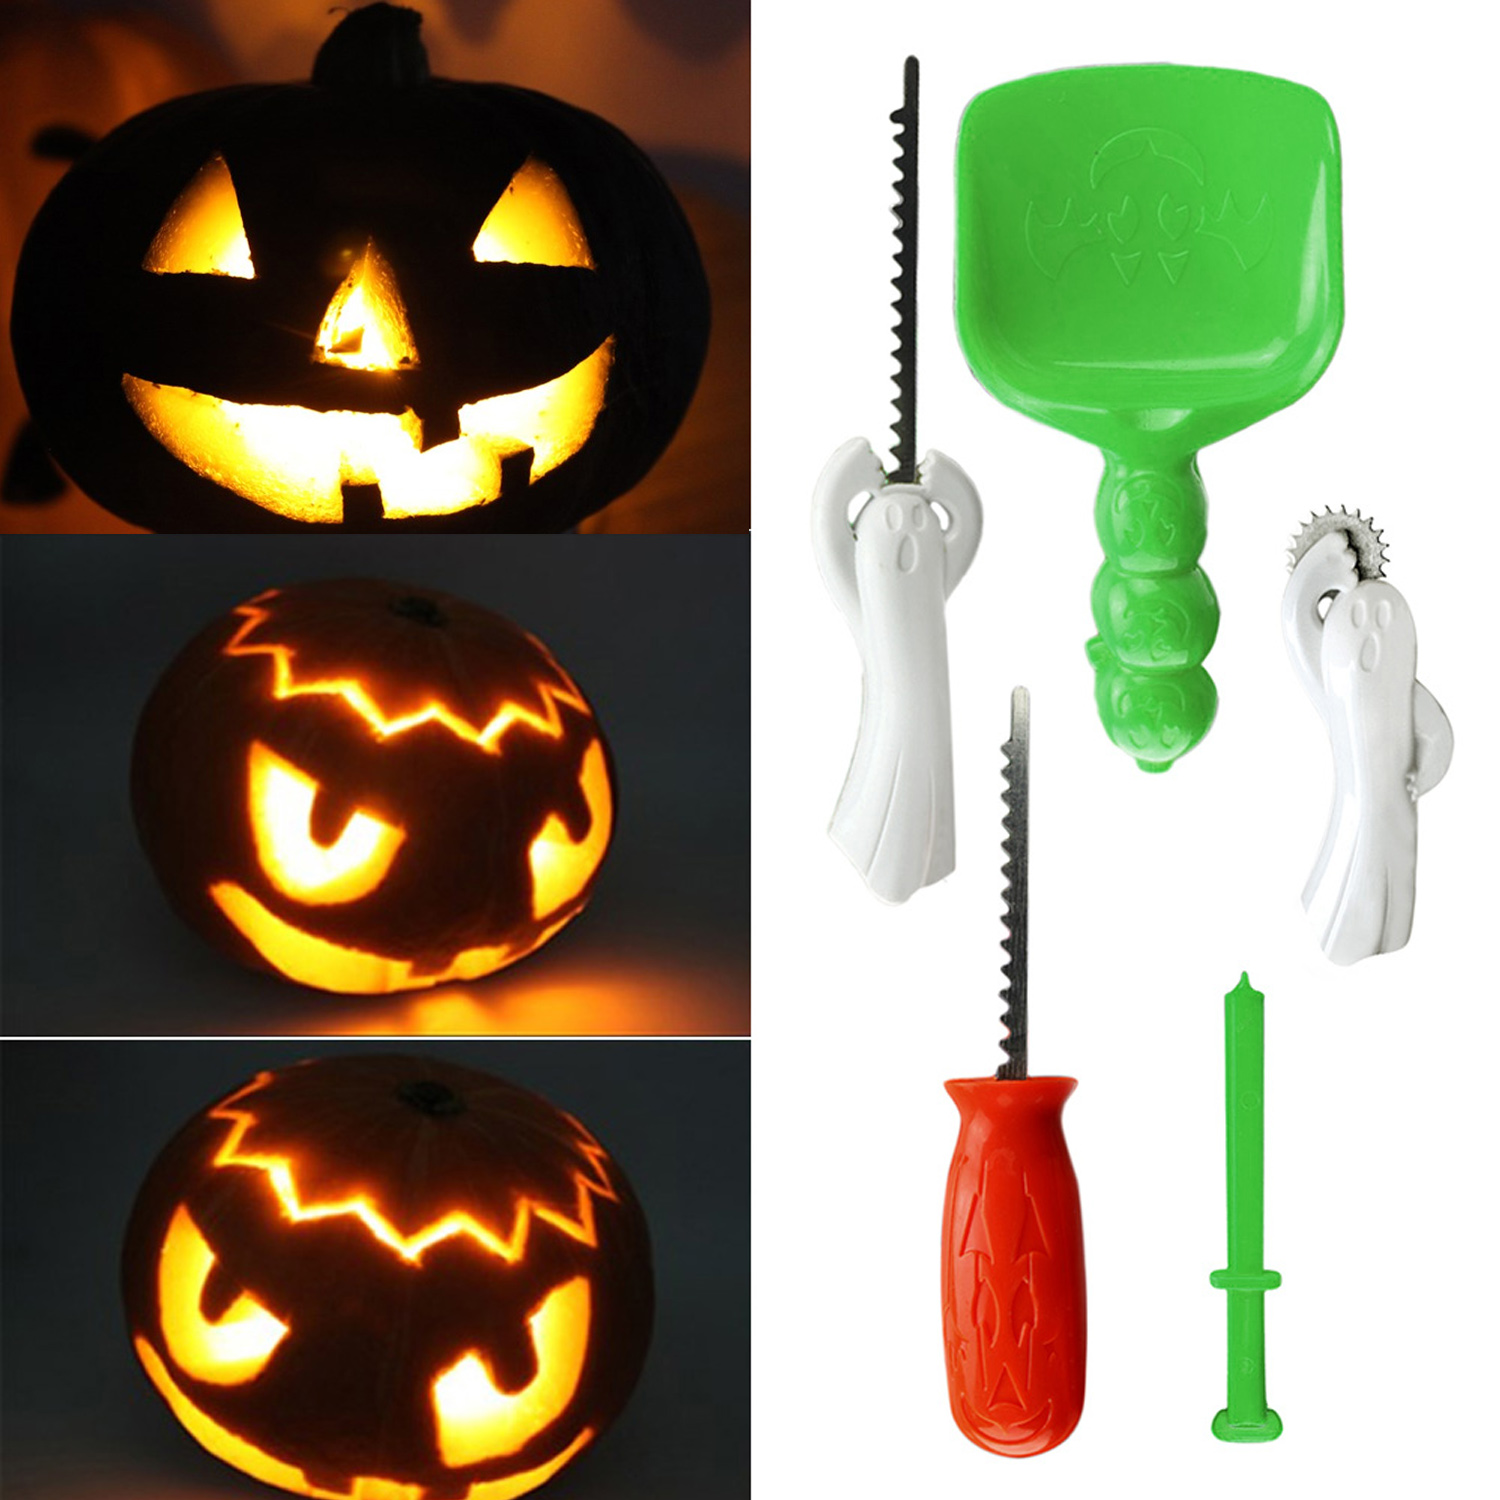 5pcs Halloween Pumpkin Craft Carving Tools Kit Includes Scoop Drill Stencil Wheel Carving Saws For Halloween Supplies